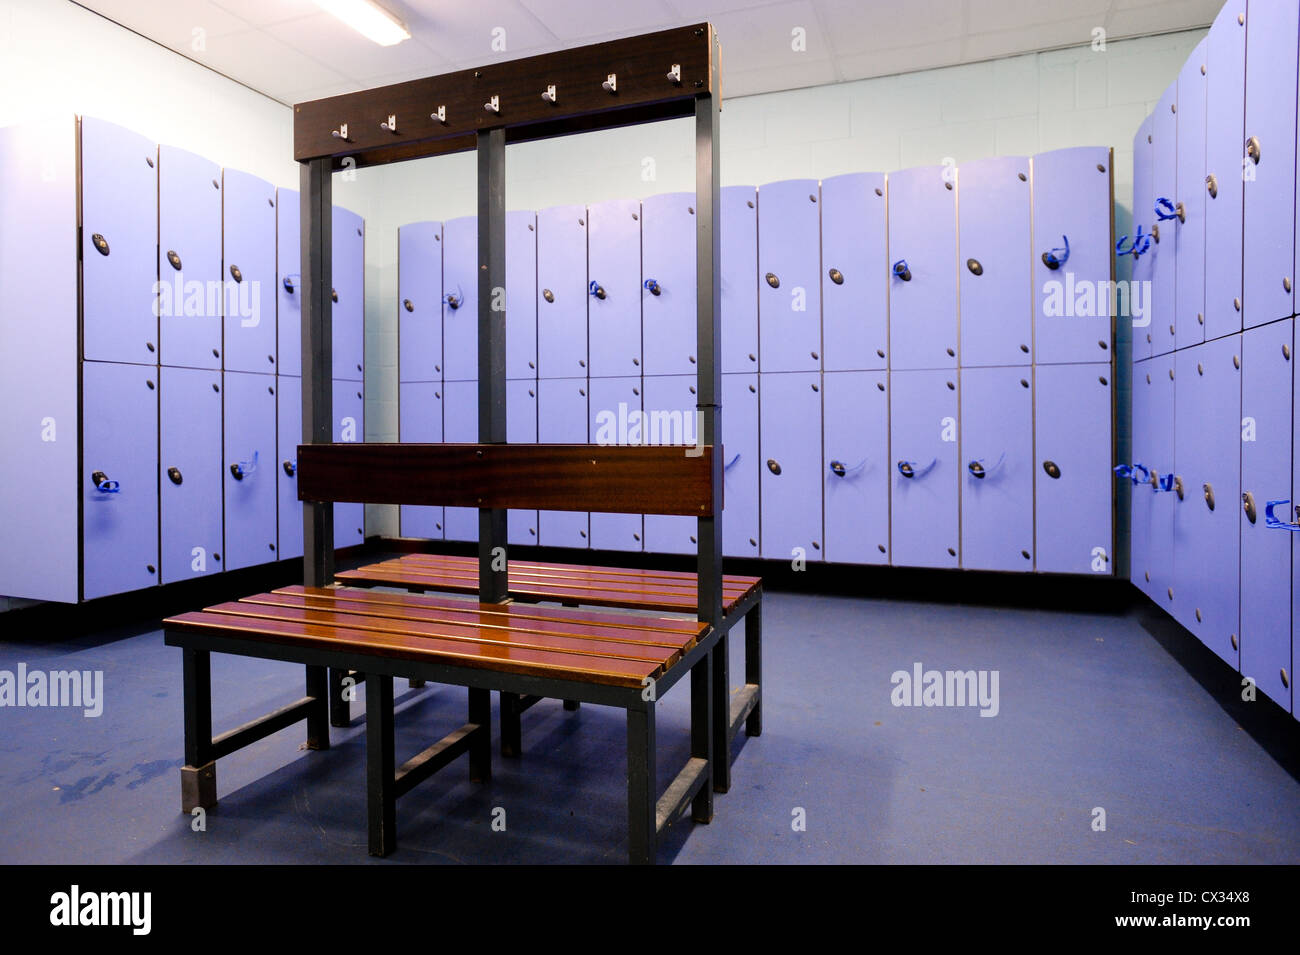 Changing rooms in a modern sports facility Stock Photo 50471520 Alamy